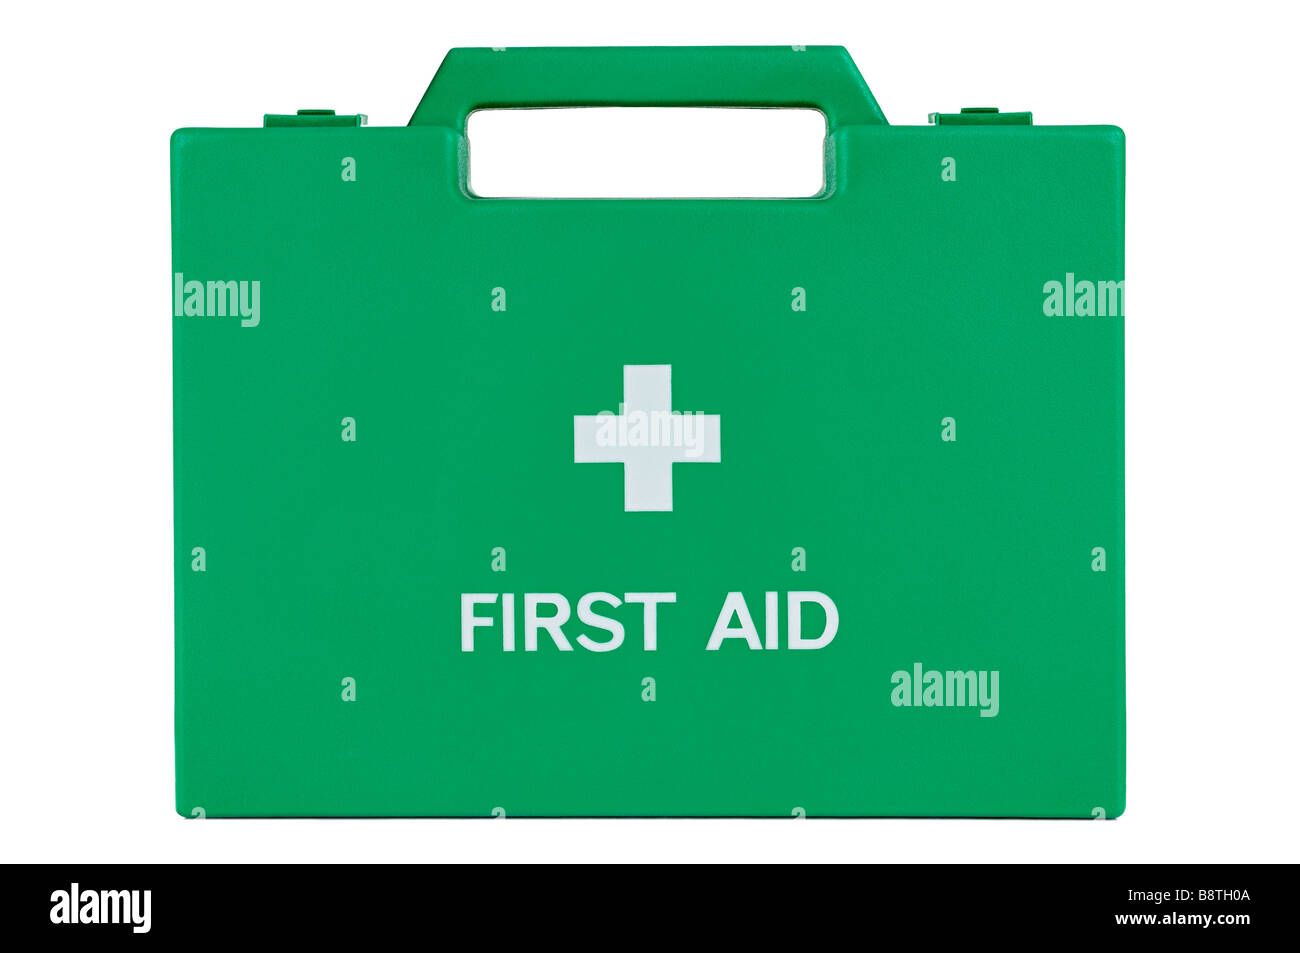 First Aid Box, Cut Out. - Stock Image